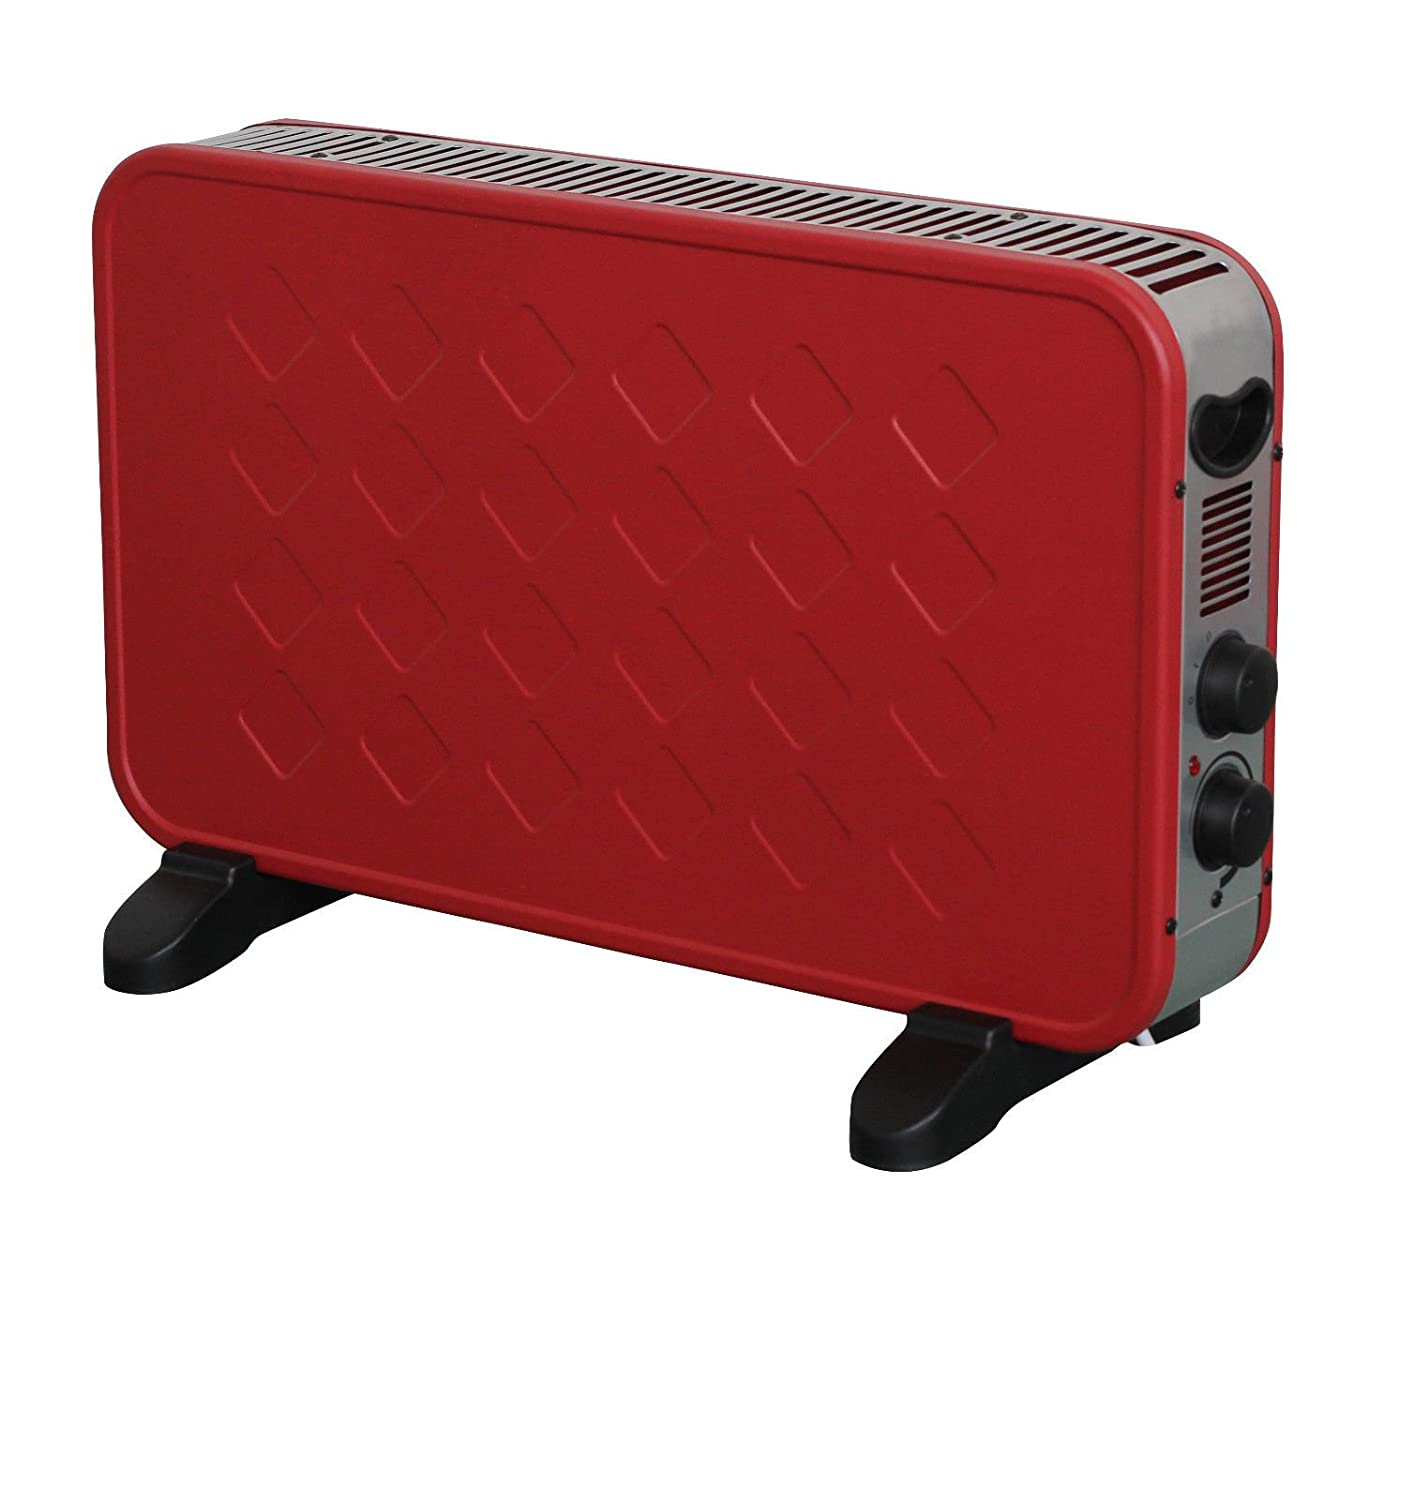 2000W PORTABLE RED ELECTRIC CONVECTOR THERMOSTAT HEATER WINTER 2KW STYLISH Sentik